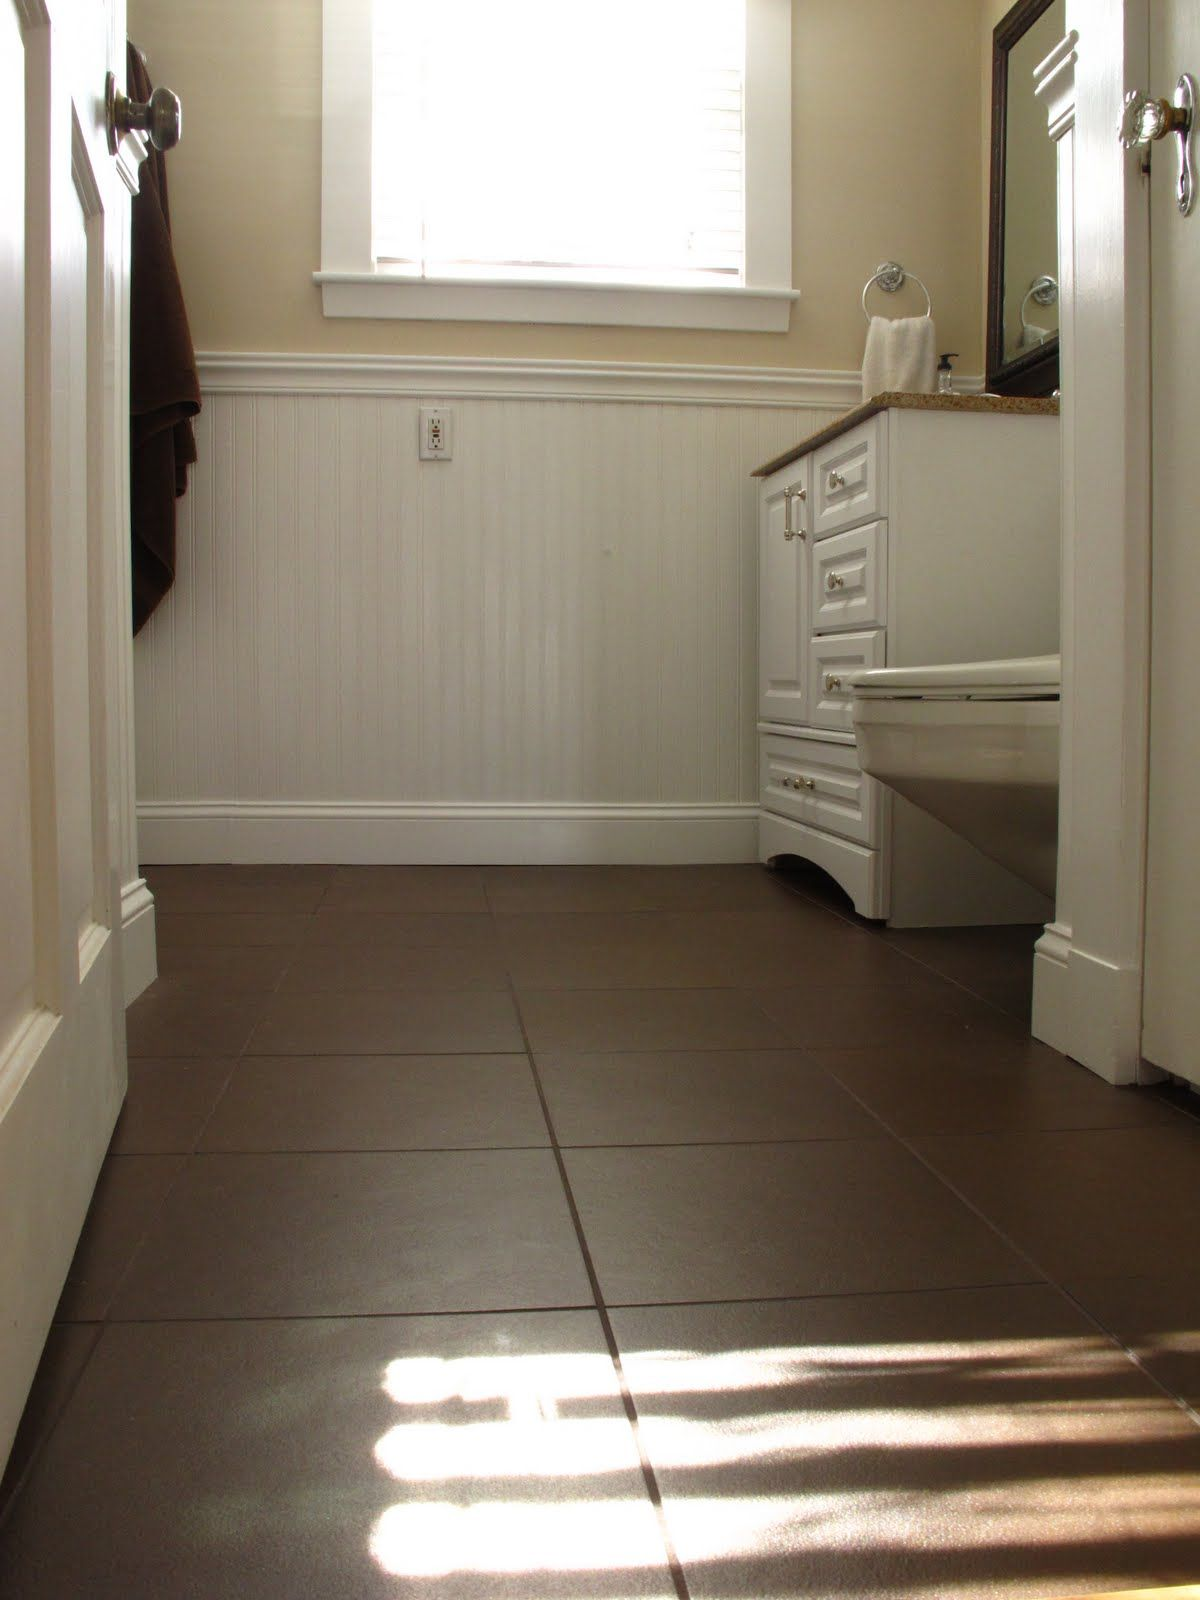 Dark brown tile in bathroom floor white subway tile in Images of bathroom tile floors